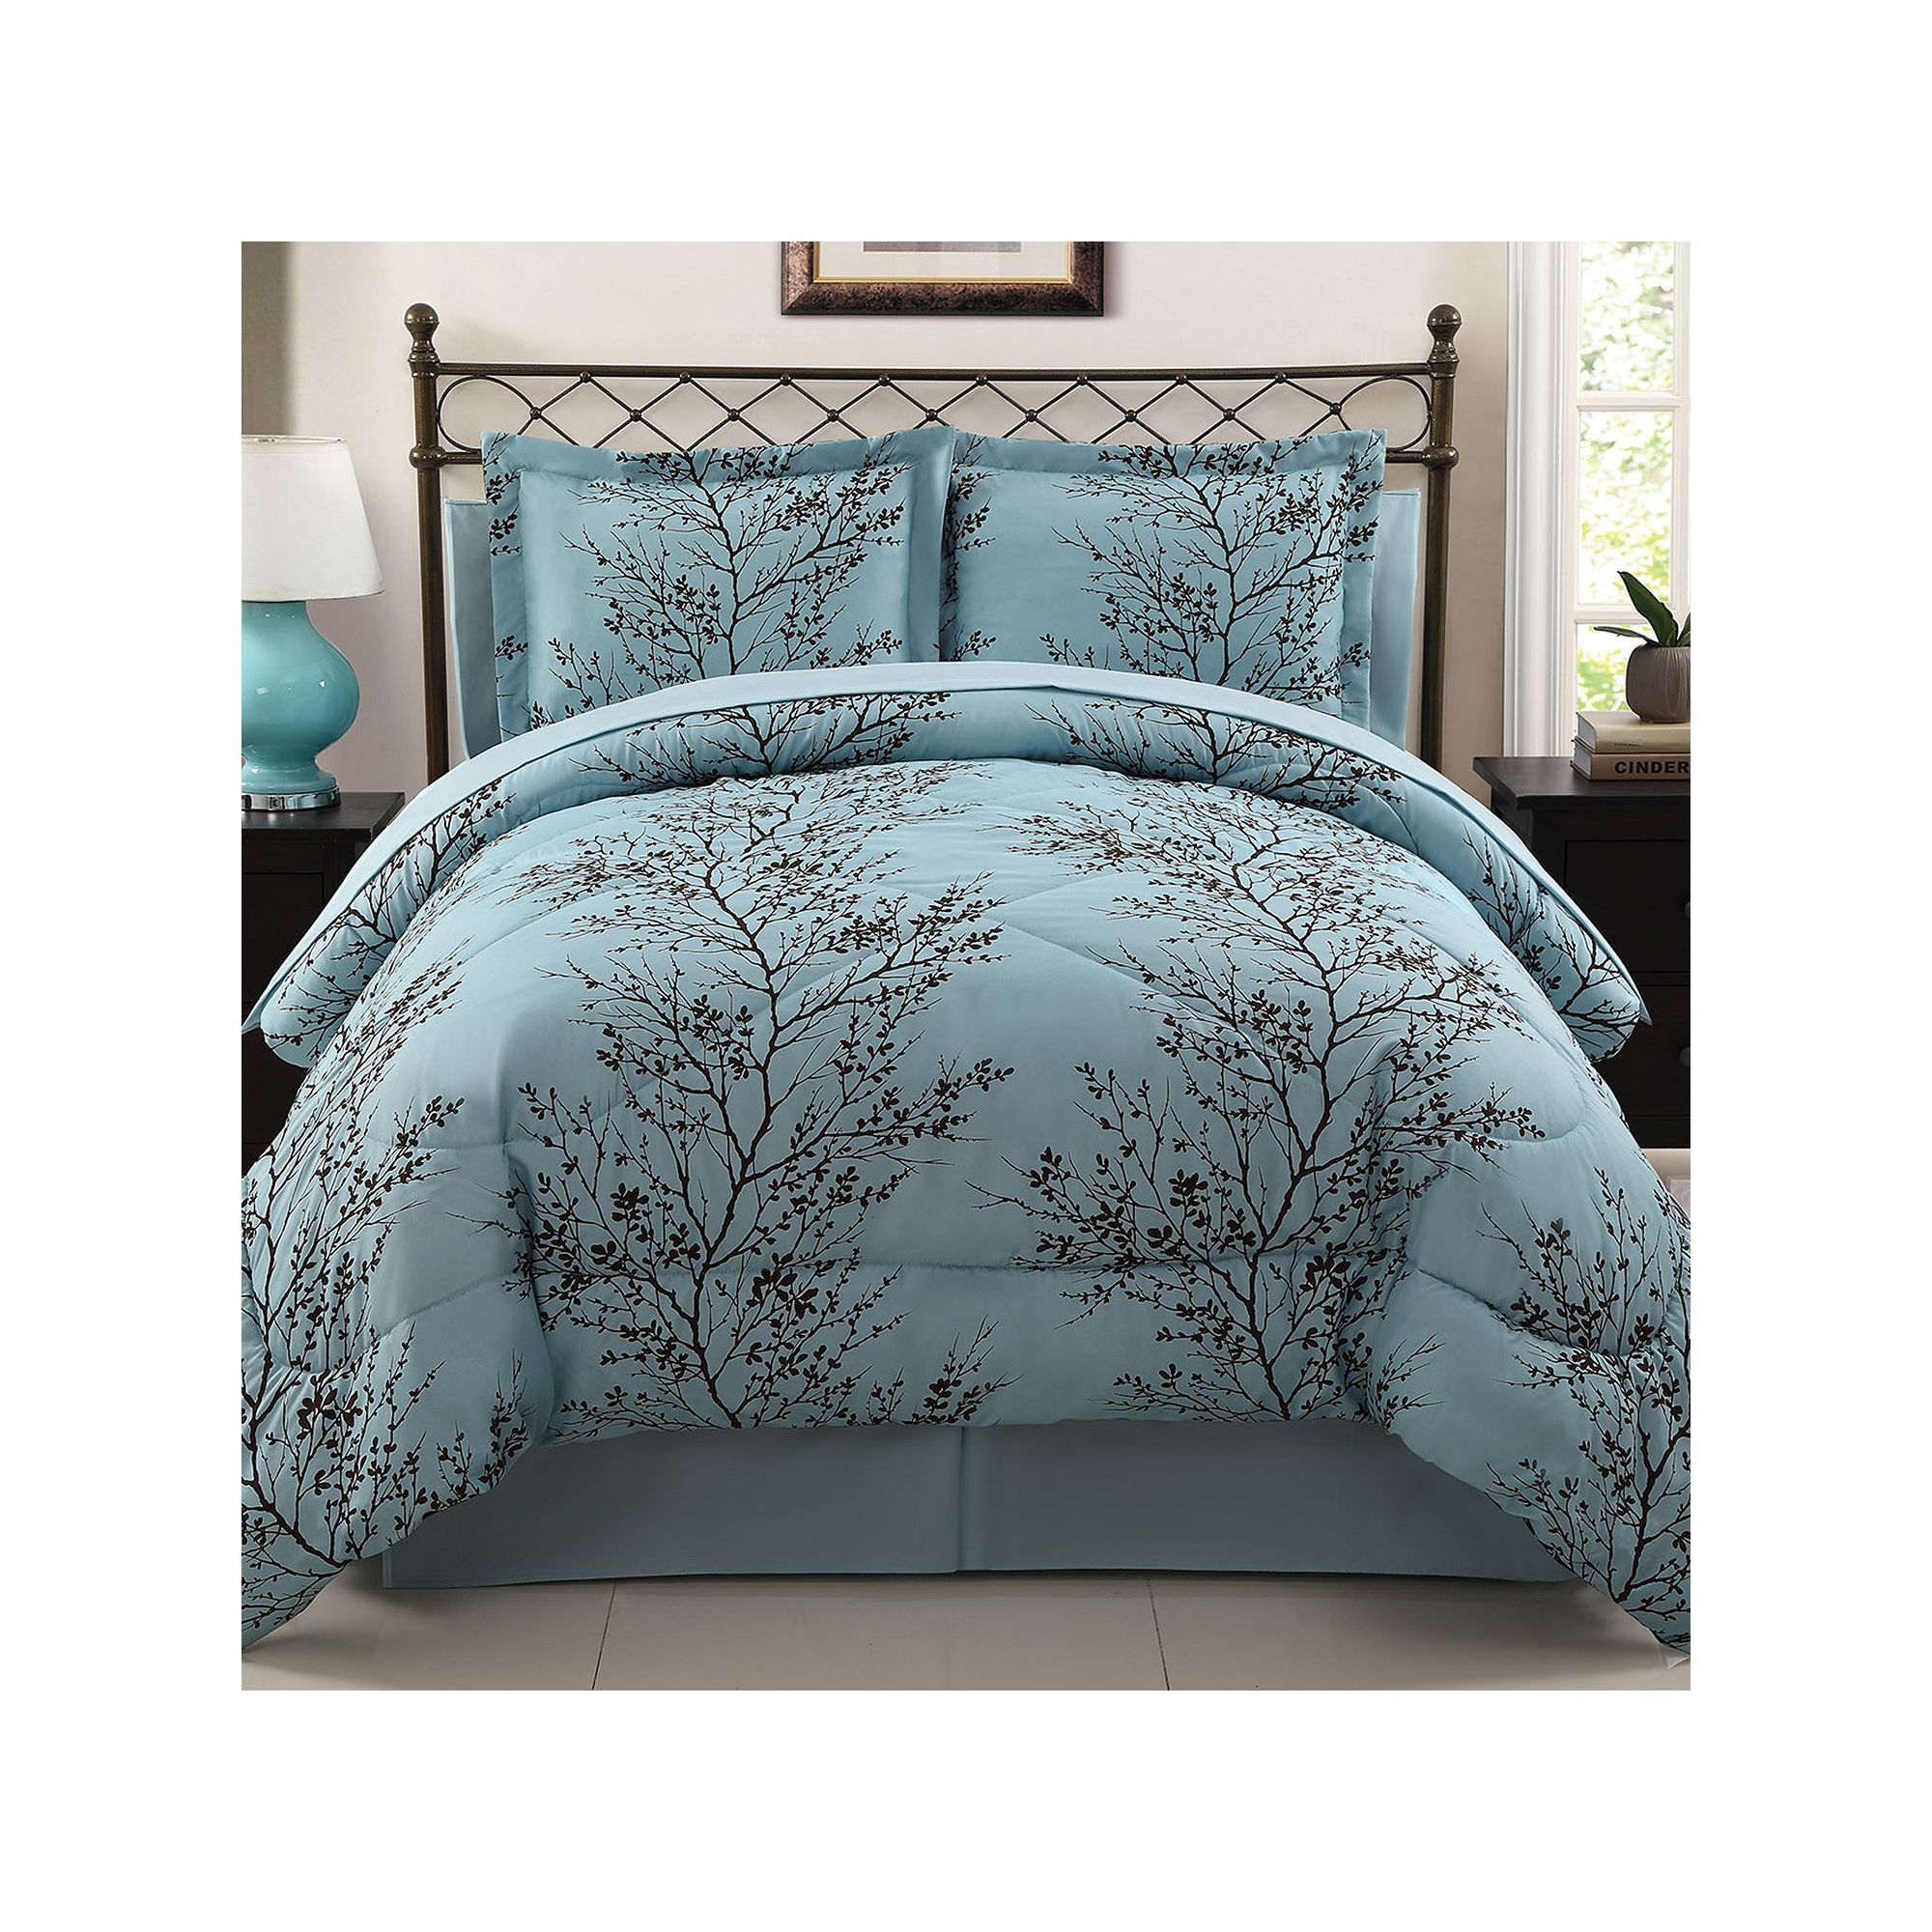 twin dp bedding aqua blue comforters set damask girls com amazon bed teen xl comforter full print home floral green kitchen lime